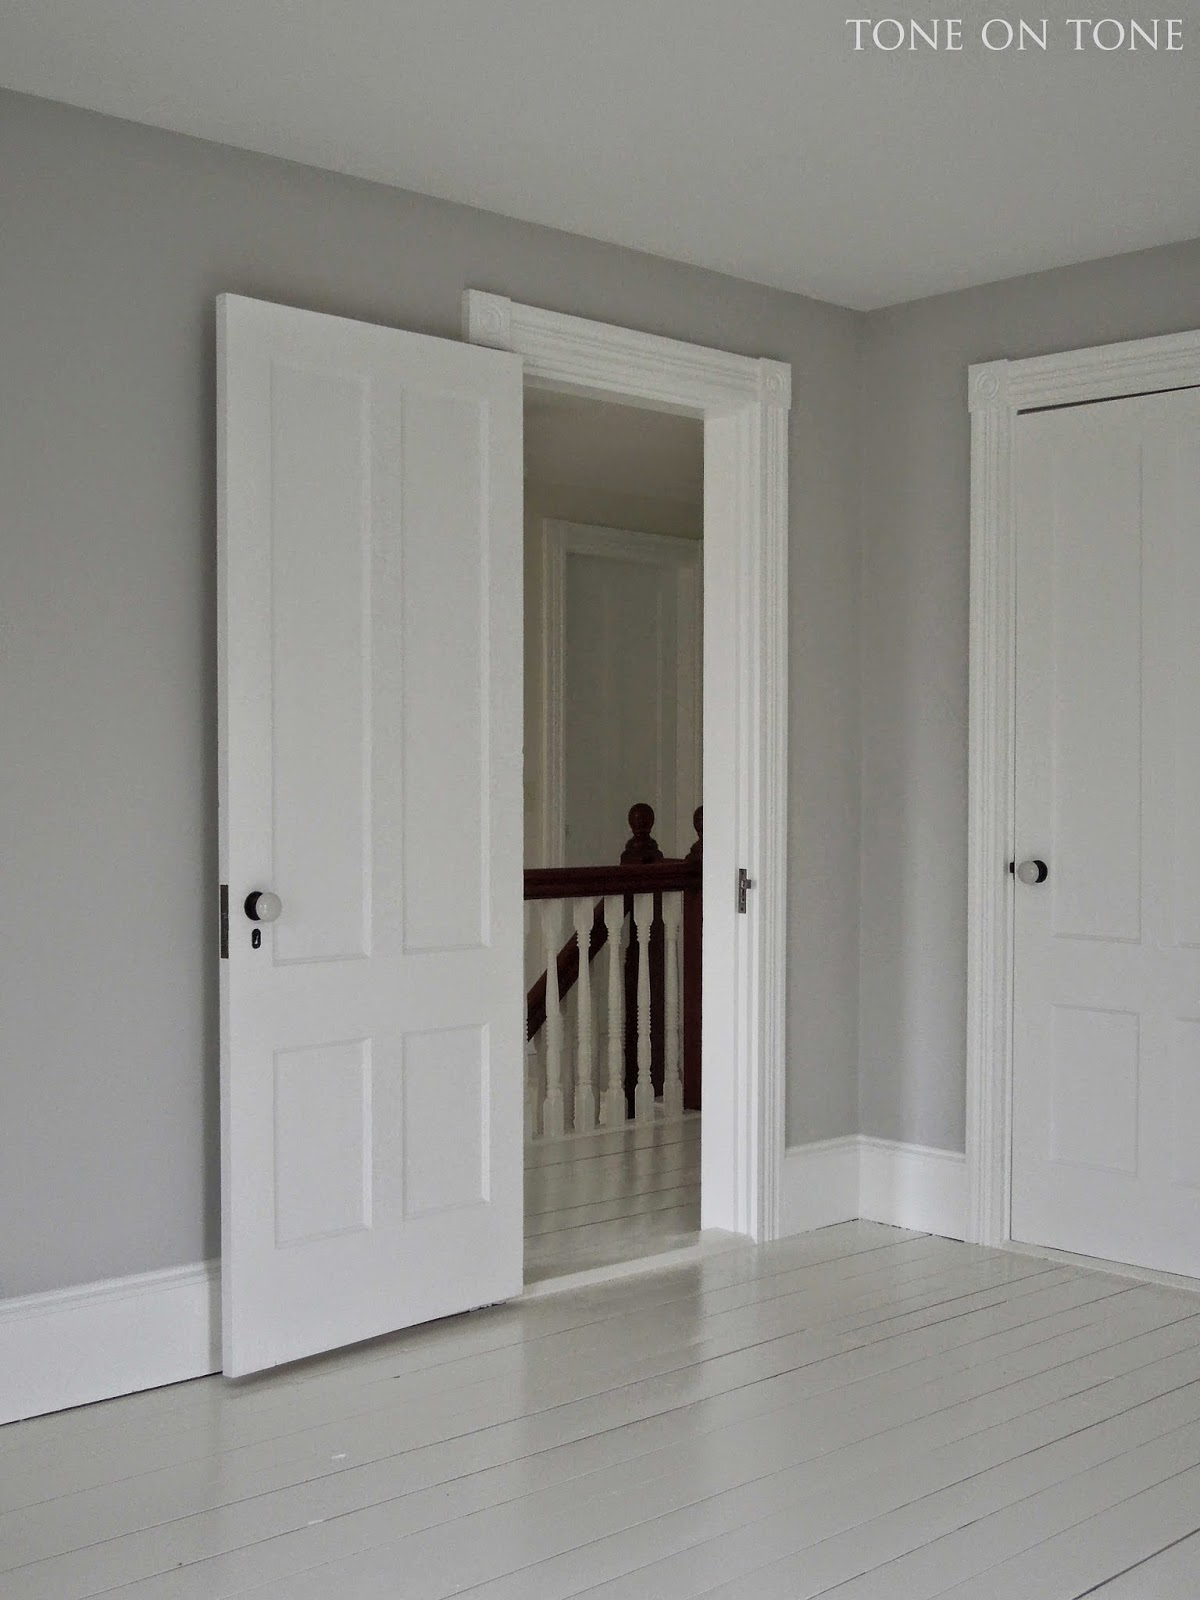 Tone on tone sharing paint colors and more Paint colors that go with grey flooring